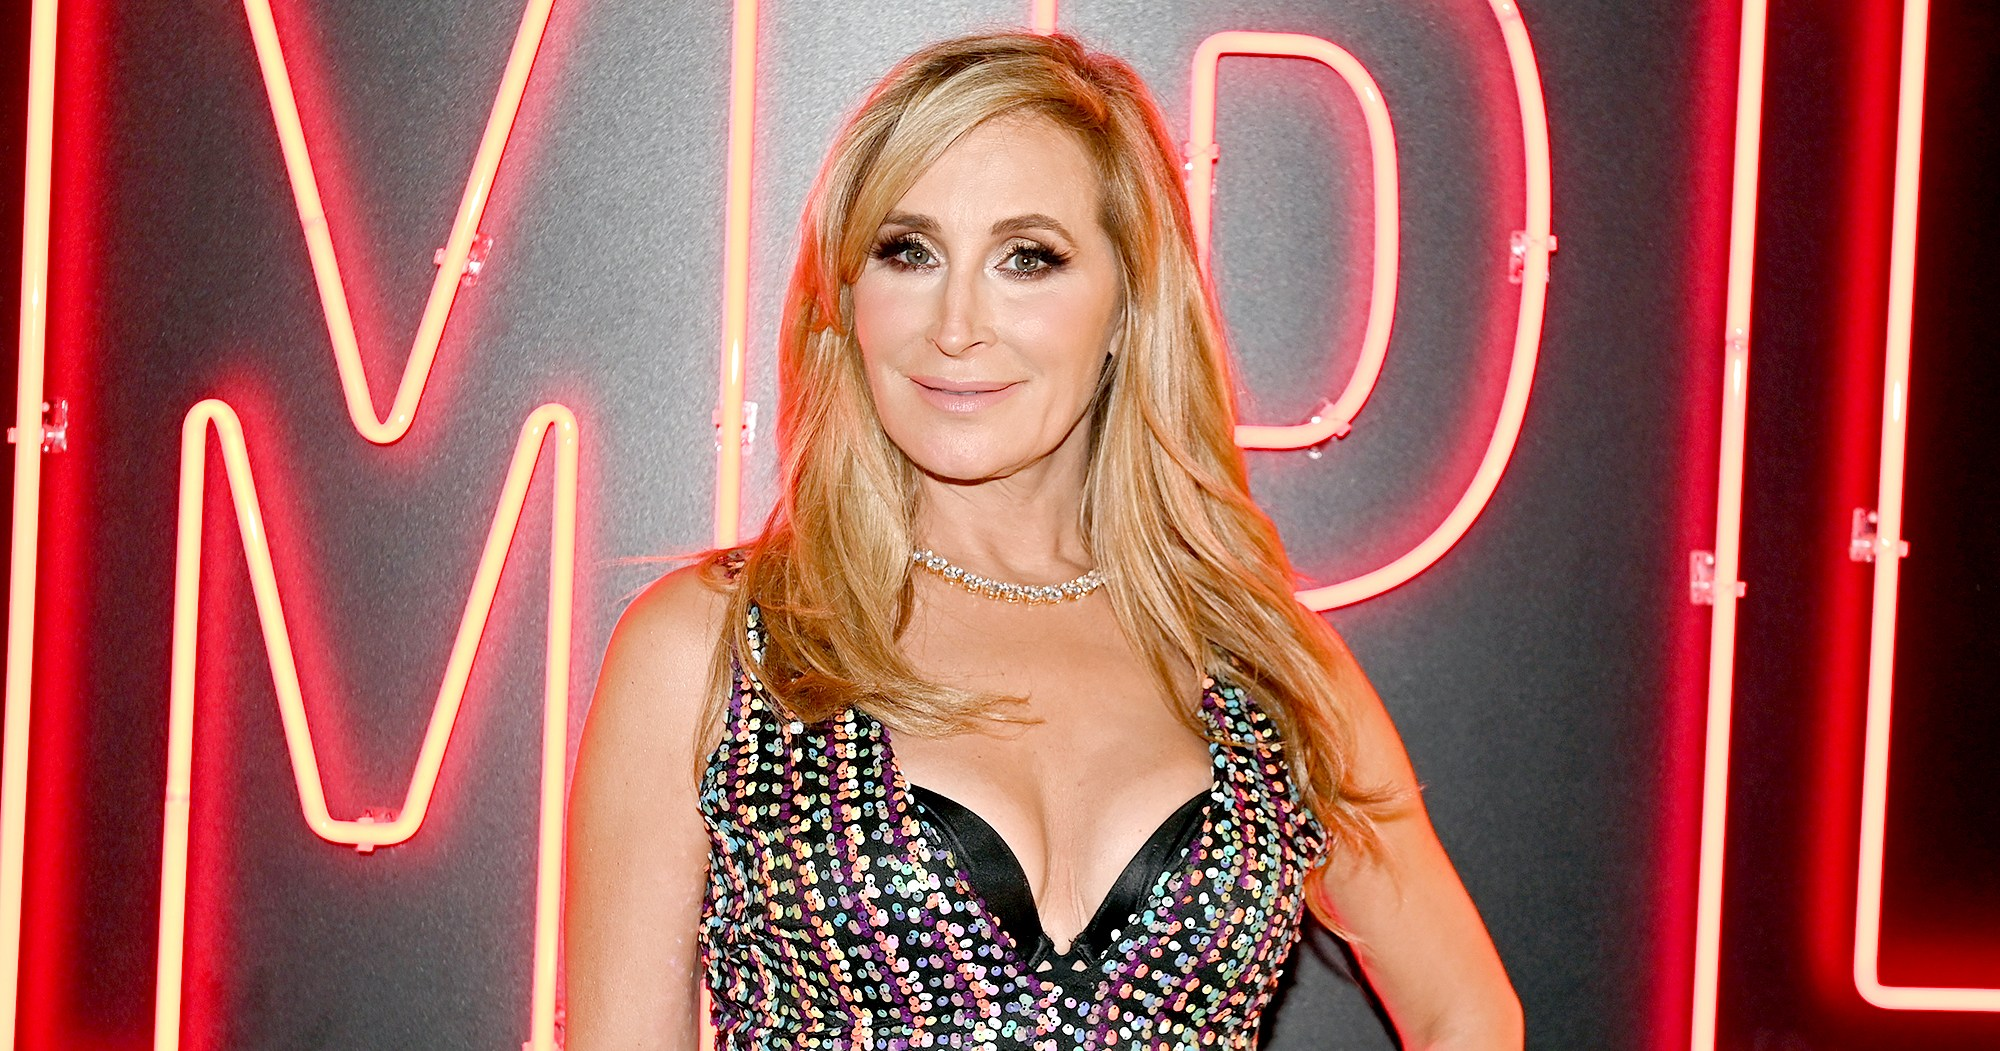 'Real Housewives of New York City' Star Sonja Morgan Dishes on Bethenny Frankel's New Man